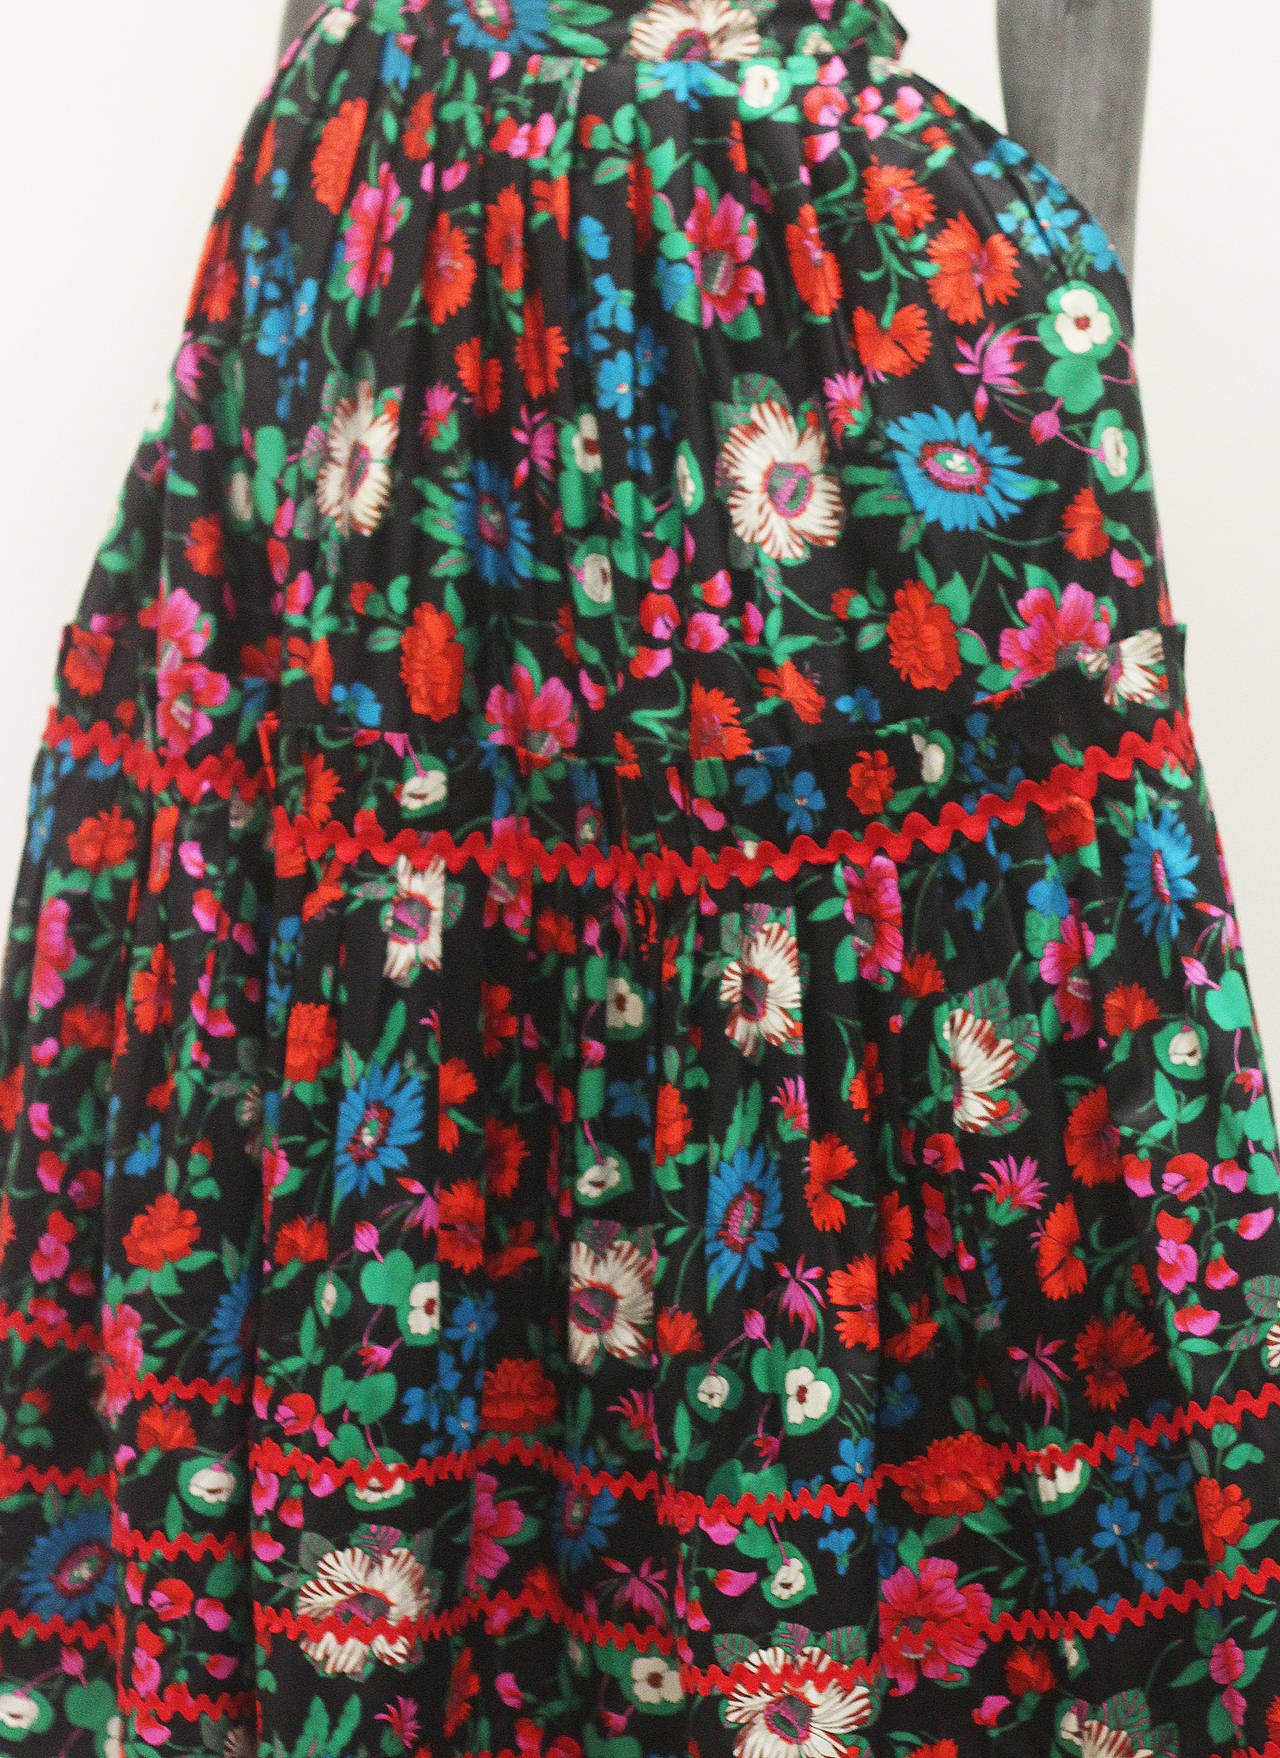 1970s Yves Saint Laurent Floral Gypsy Skirt 3